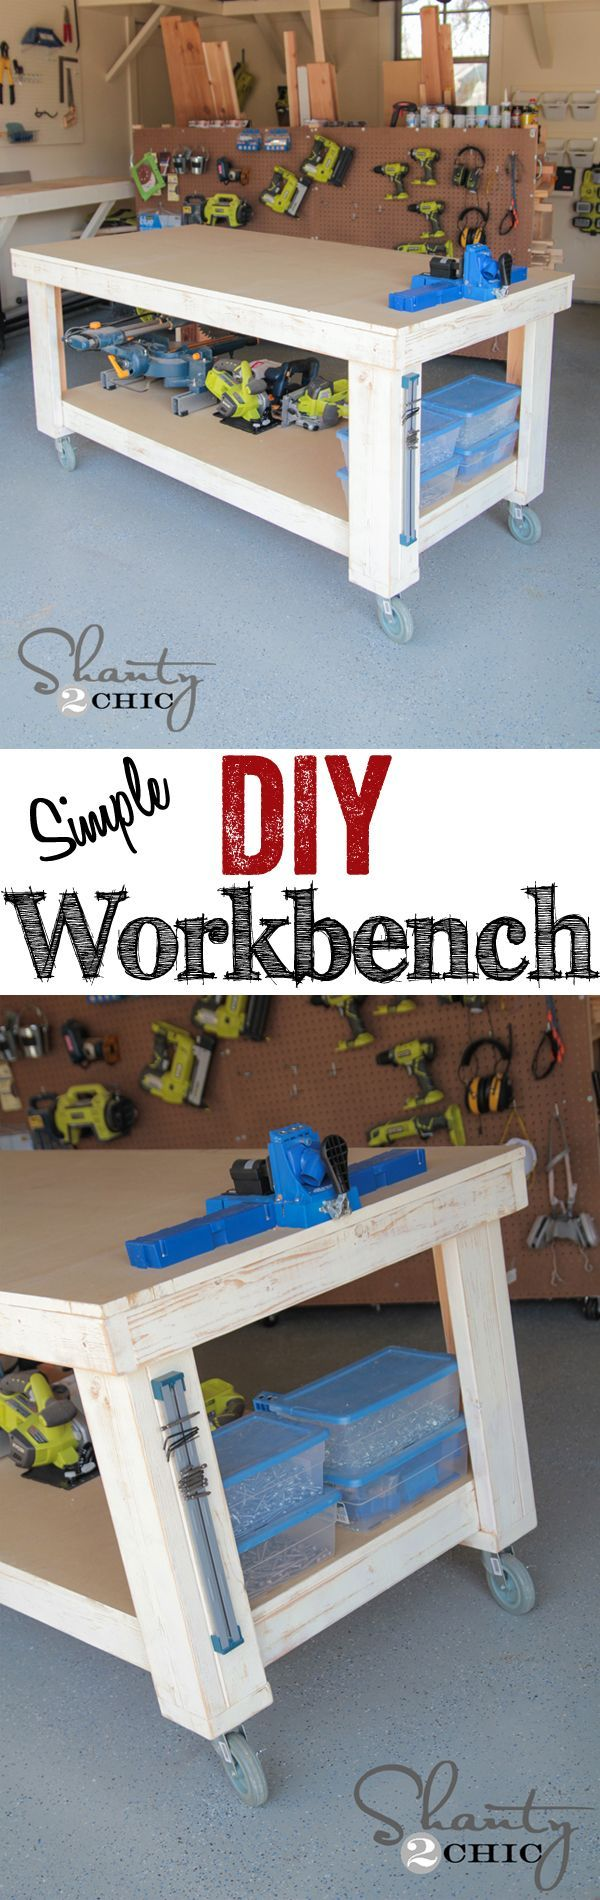 Awesome and simple DIY Workbench!! LOVE this!  www.shanty-2-chic.com #Workbenchplans